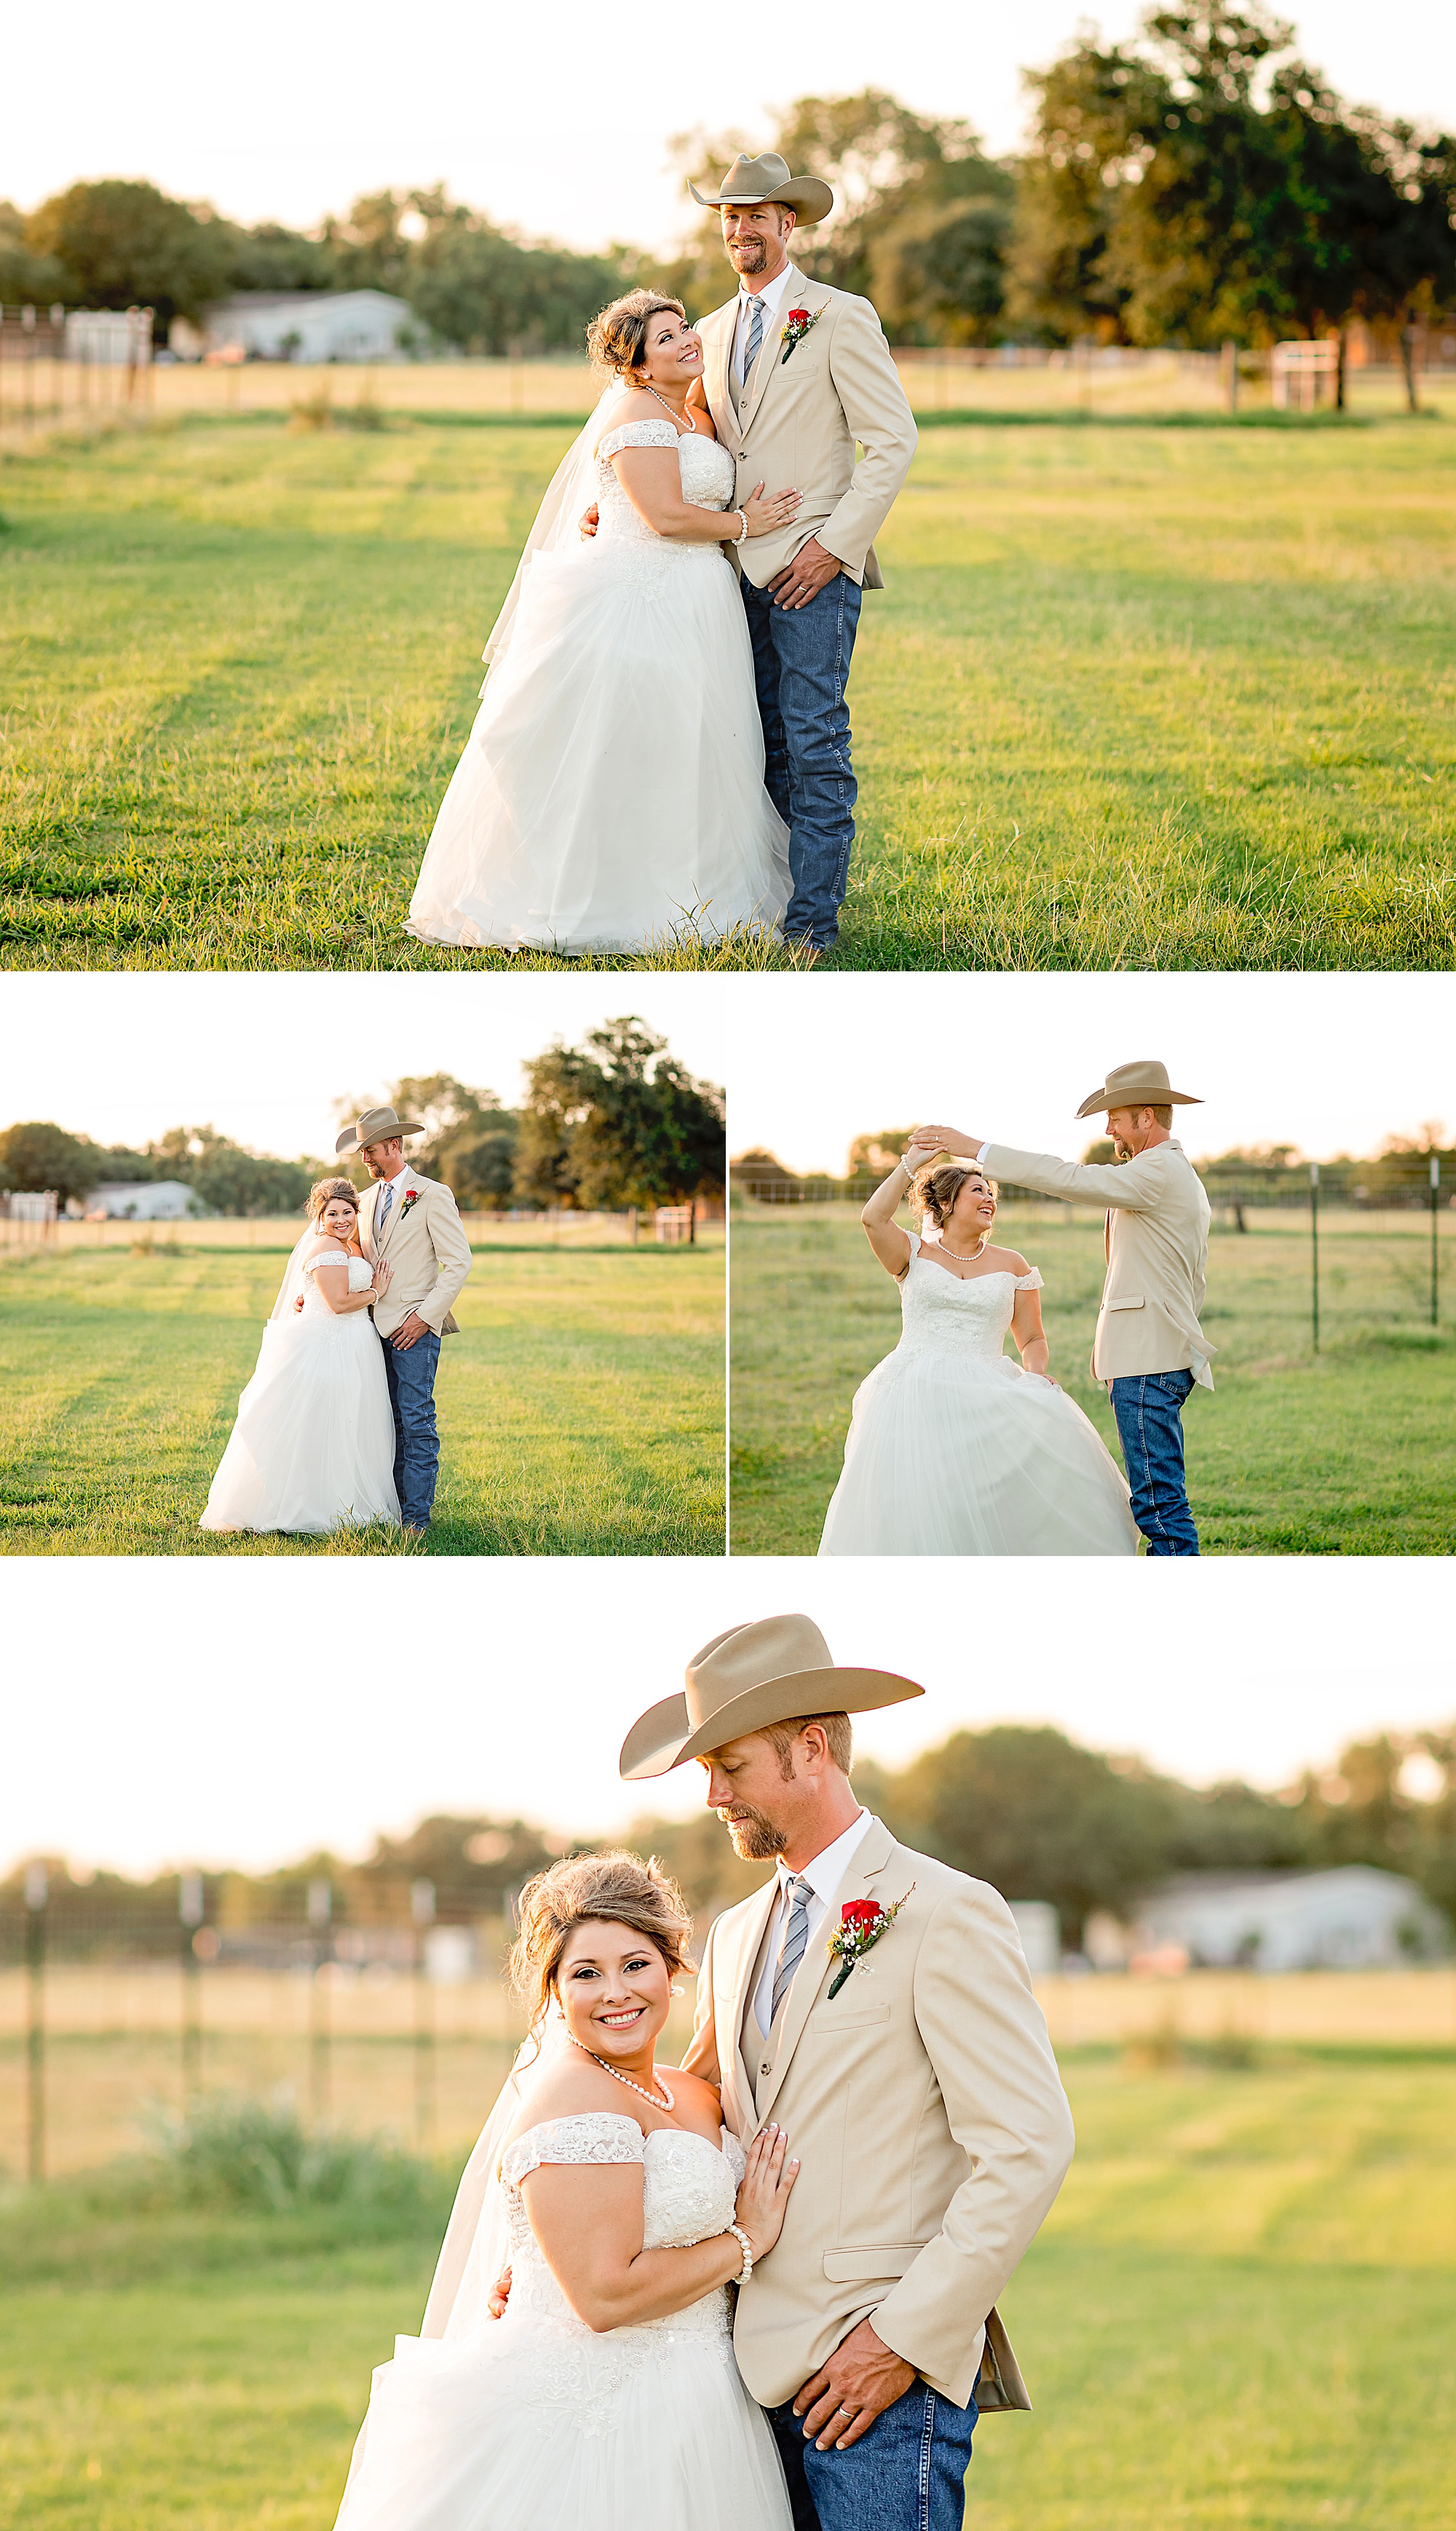 Wedding-Photographer-Rustic-Sunflower-theme-Texas-Carly-Barton-Photography_0118.jpg